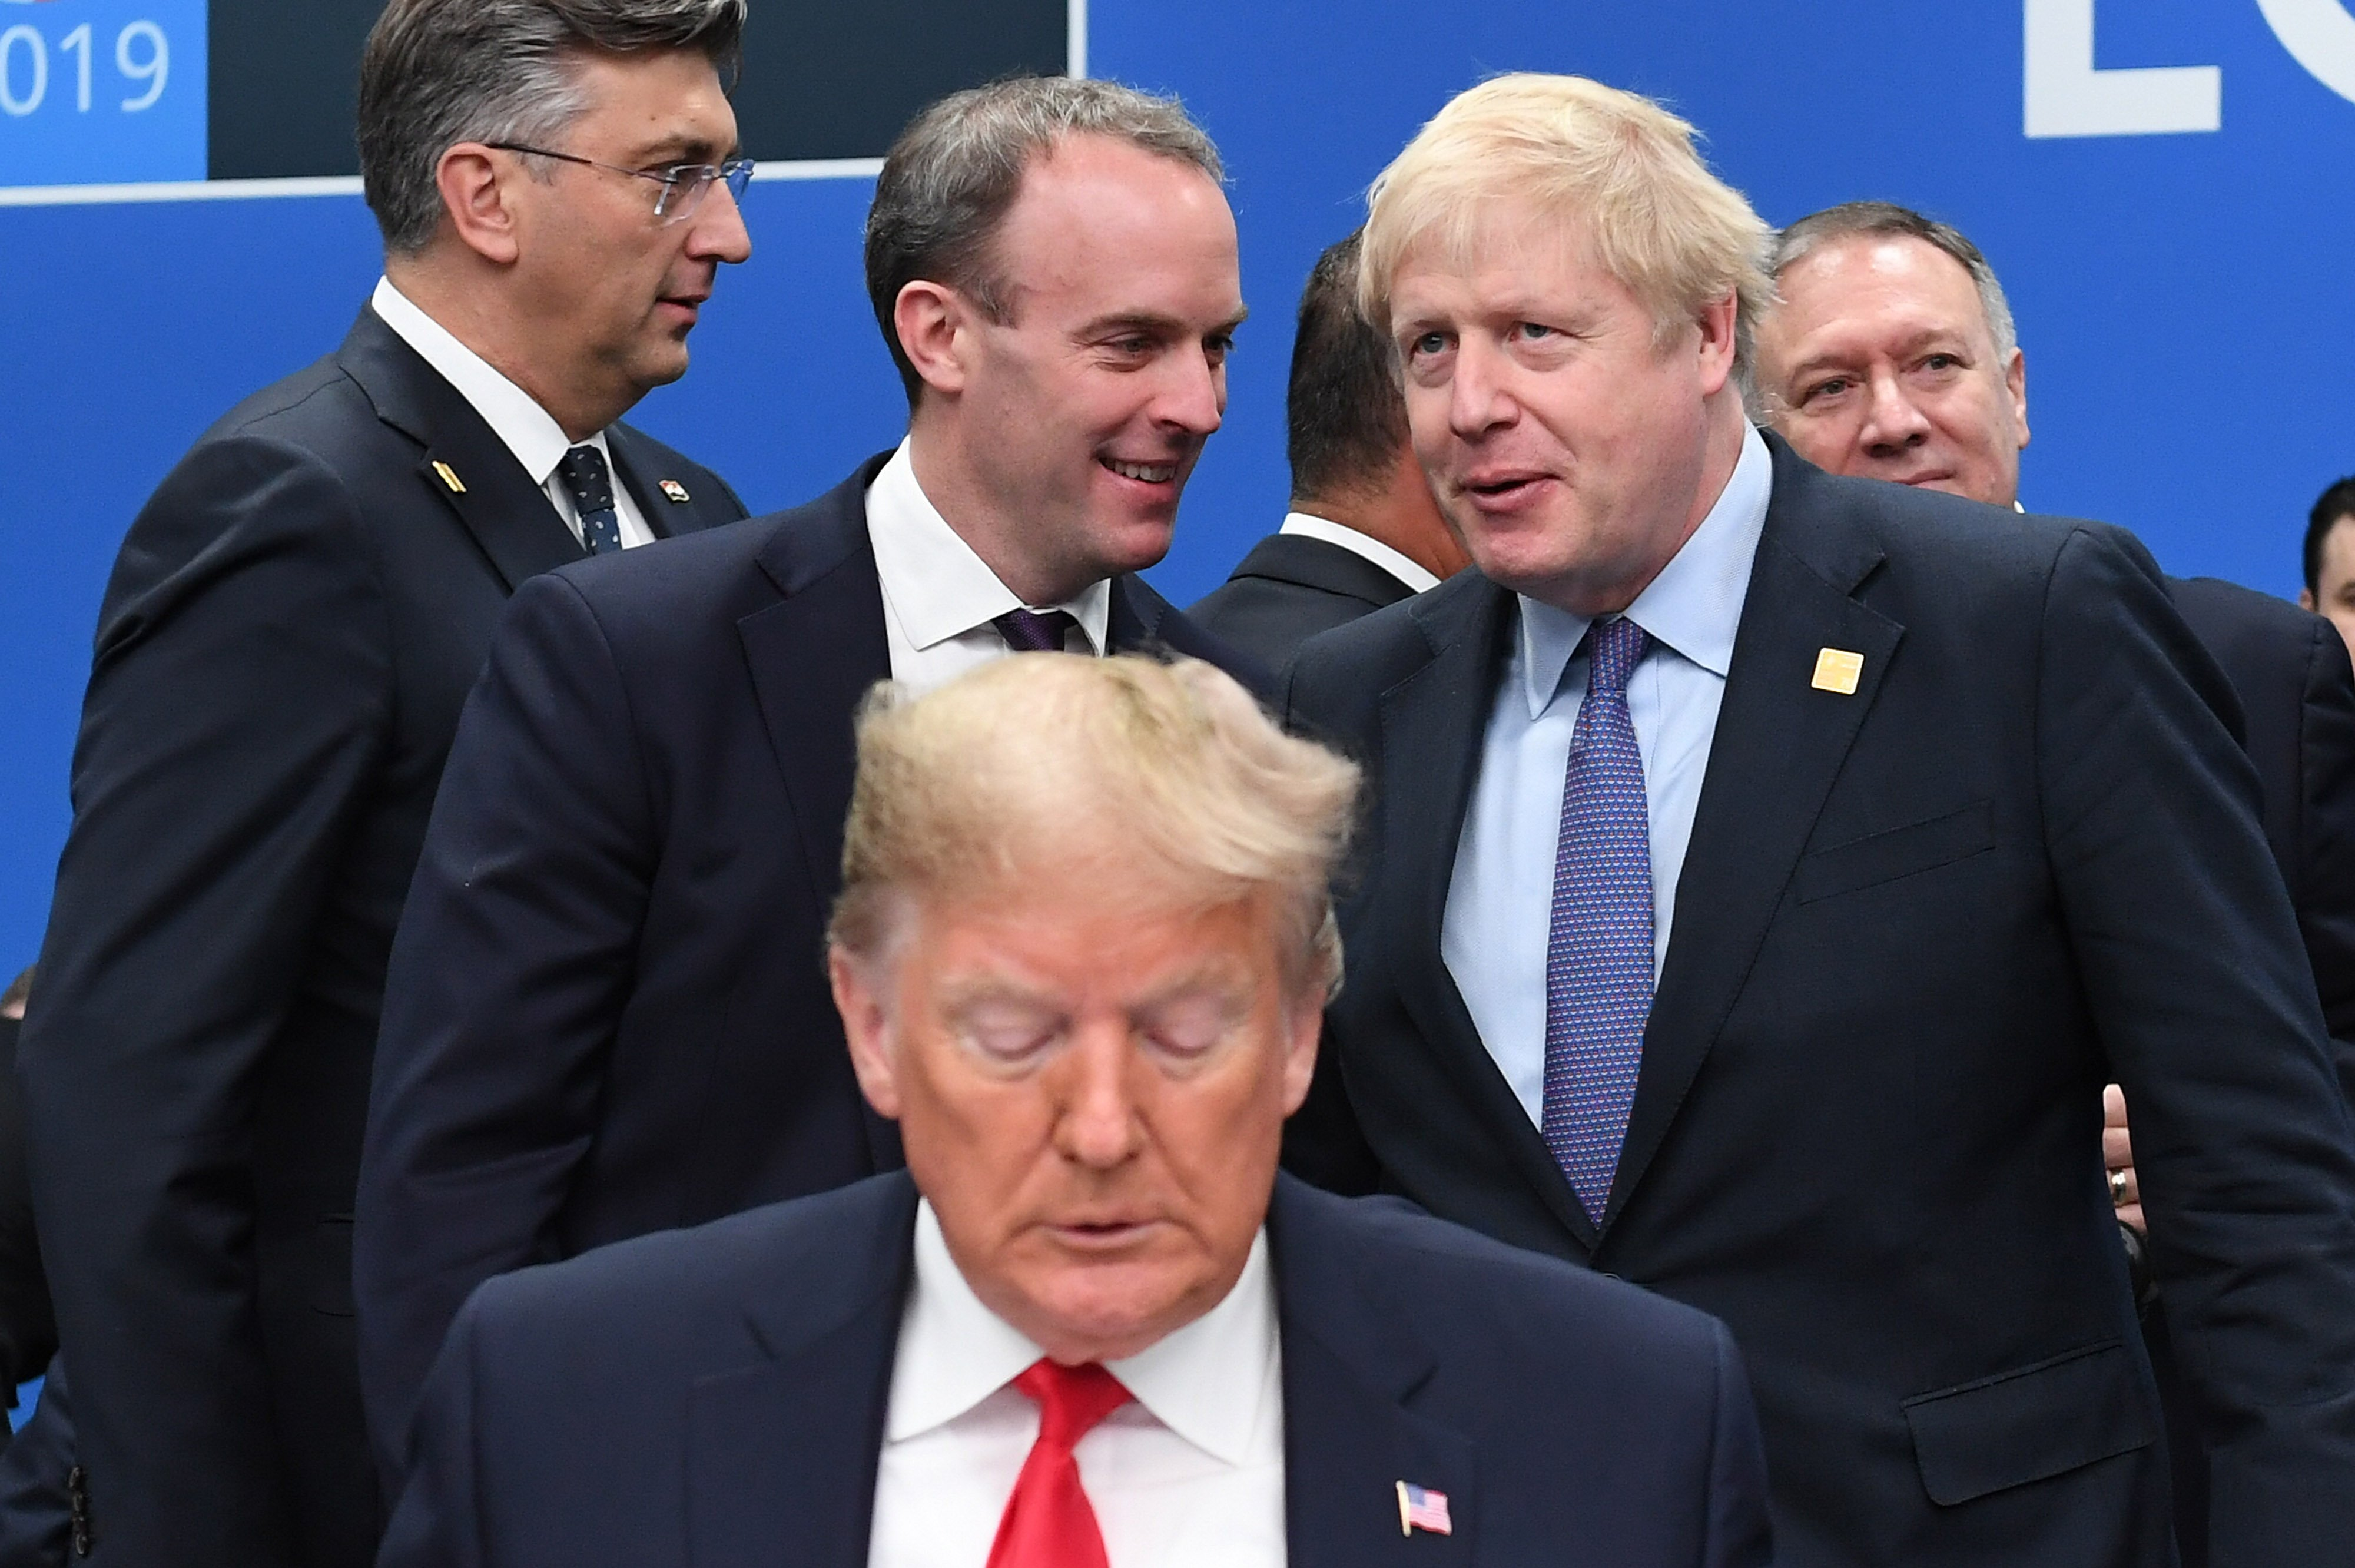 HERTFORD, ENGLAND - DECEMBER 04: US President Donald Trump (front) with Foreign Secretary Dominic Raab and British Prime Minister Boris Johnson onstage during the annual Nato heads of government summit on December 4, 2019 in Watford, England. France and the UK signed the Treaty of Dunkirk in 1947 in the aftermath of WW2 cementing a mutual alliance in the event of an attack by Germany or the Soviet Union. The Benelux countries joined the Treaty and in April 1949 expanded further to include North America and Canada followed by Portugal, Italy, Norway, Denmark and Iceland. This new military alliance became the North Atlantic Treaty Organisation (NATO). The organisation grew with Greece and Turkey becoming members and a re-armed West Germany was permitted in 1955. This encouraged the creation of the Soviet-led Warsaw Pact delineating the two sides of the Cold War. This year marks the 70th anniversary of NATO. (Photo by Stefan Rousseau - WPA Pool/Getty Images)